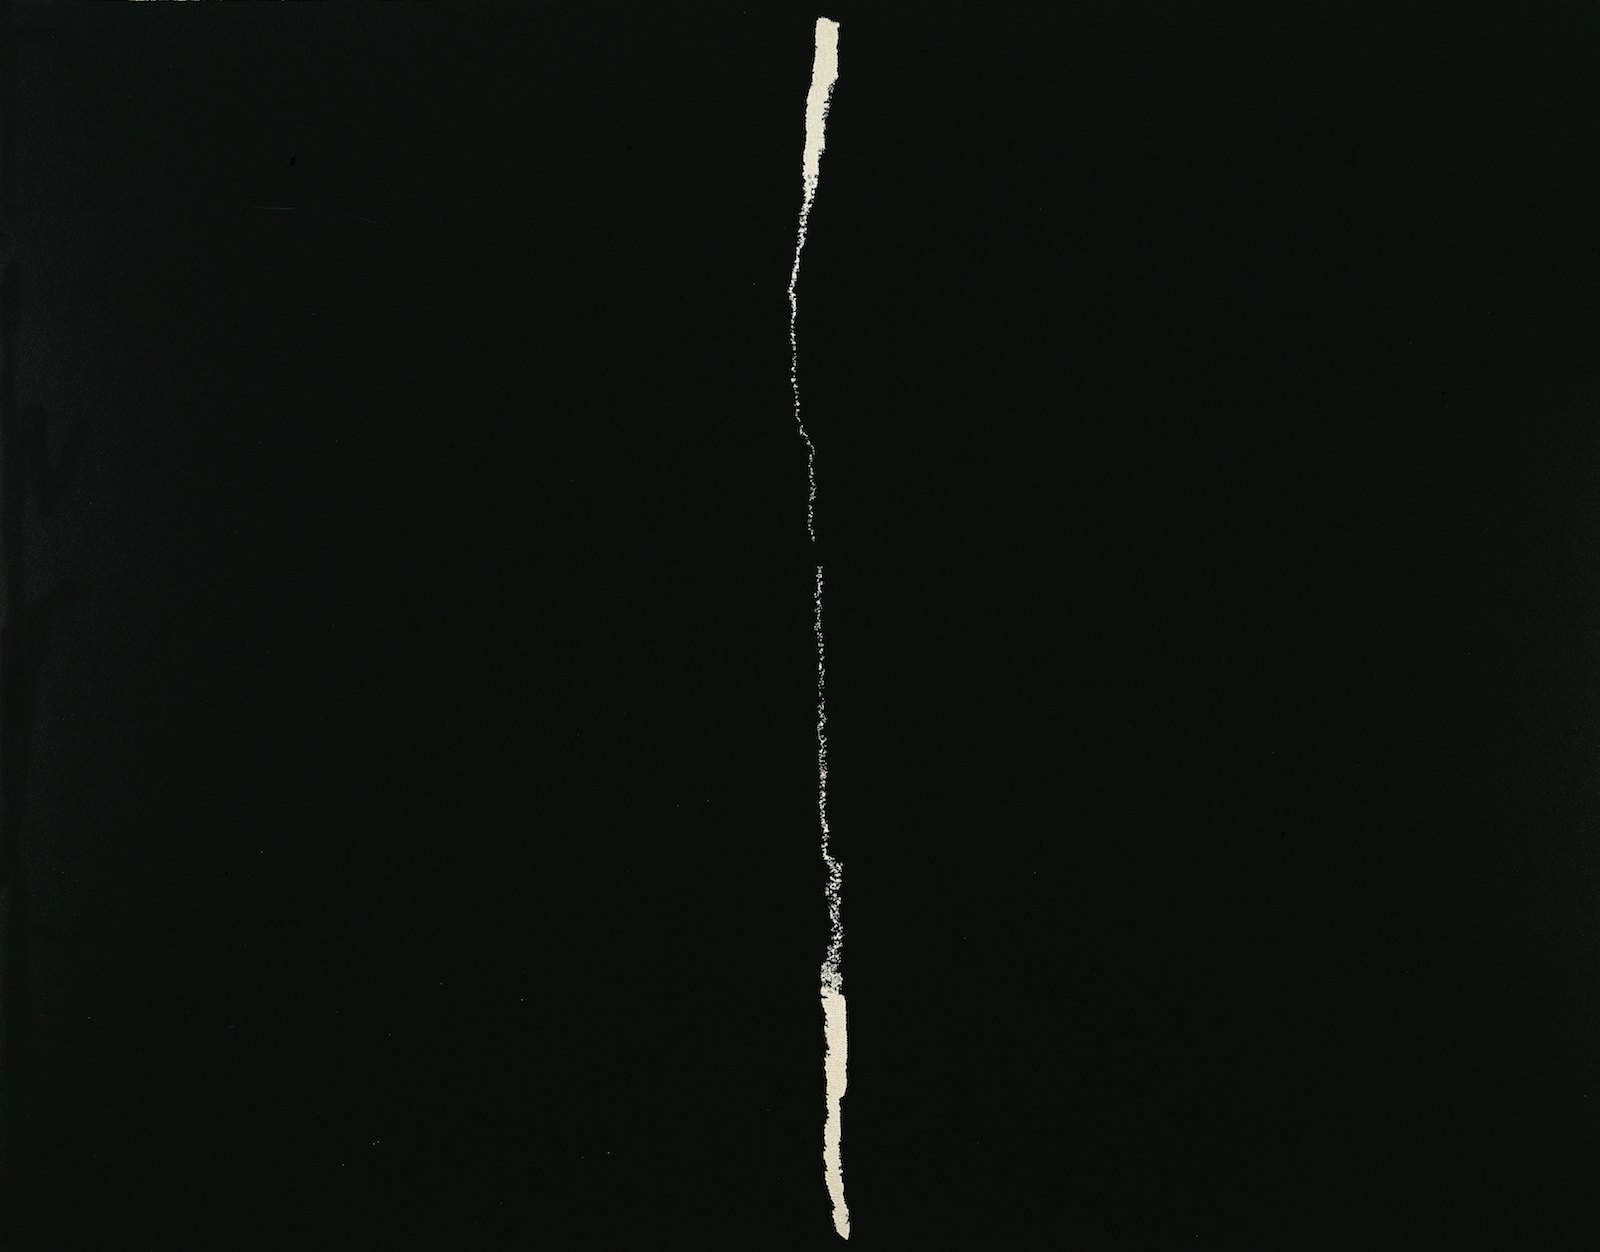 Sign, 2000, Tapestry woven in collaboration with Benedikte Groth, 290 x 370 cm